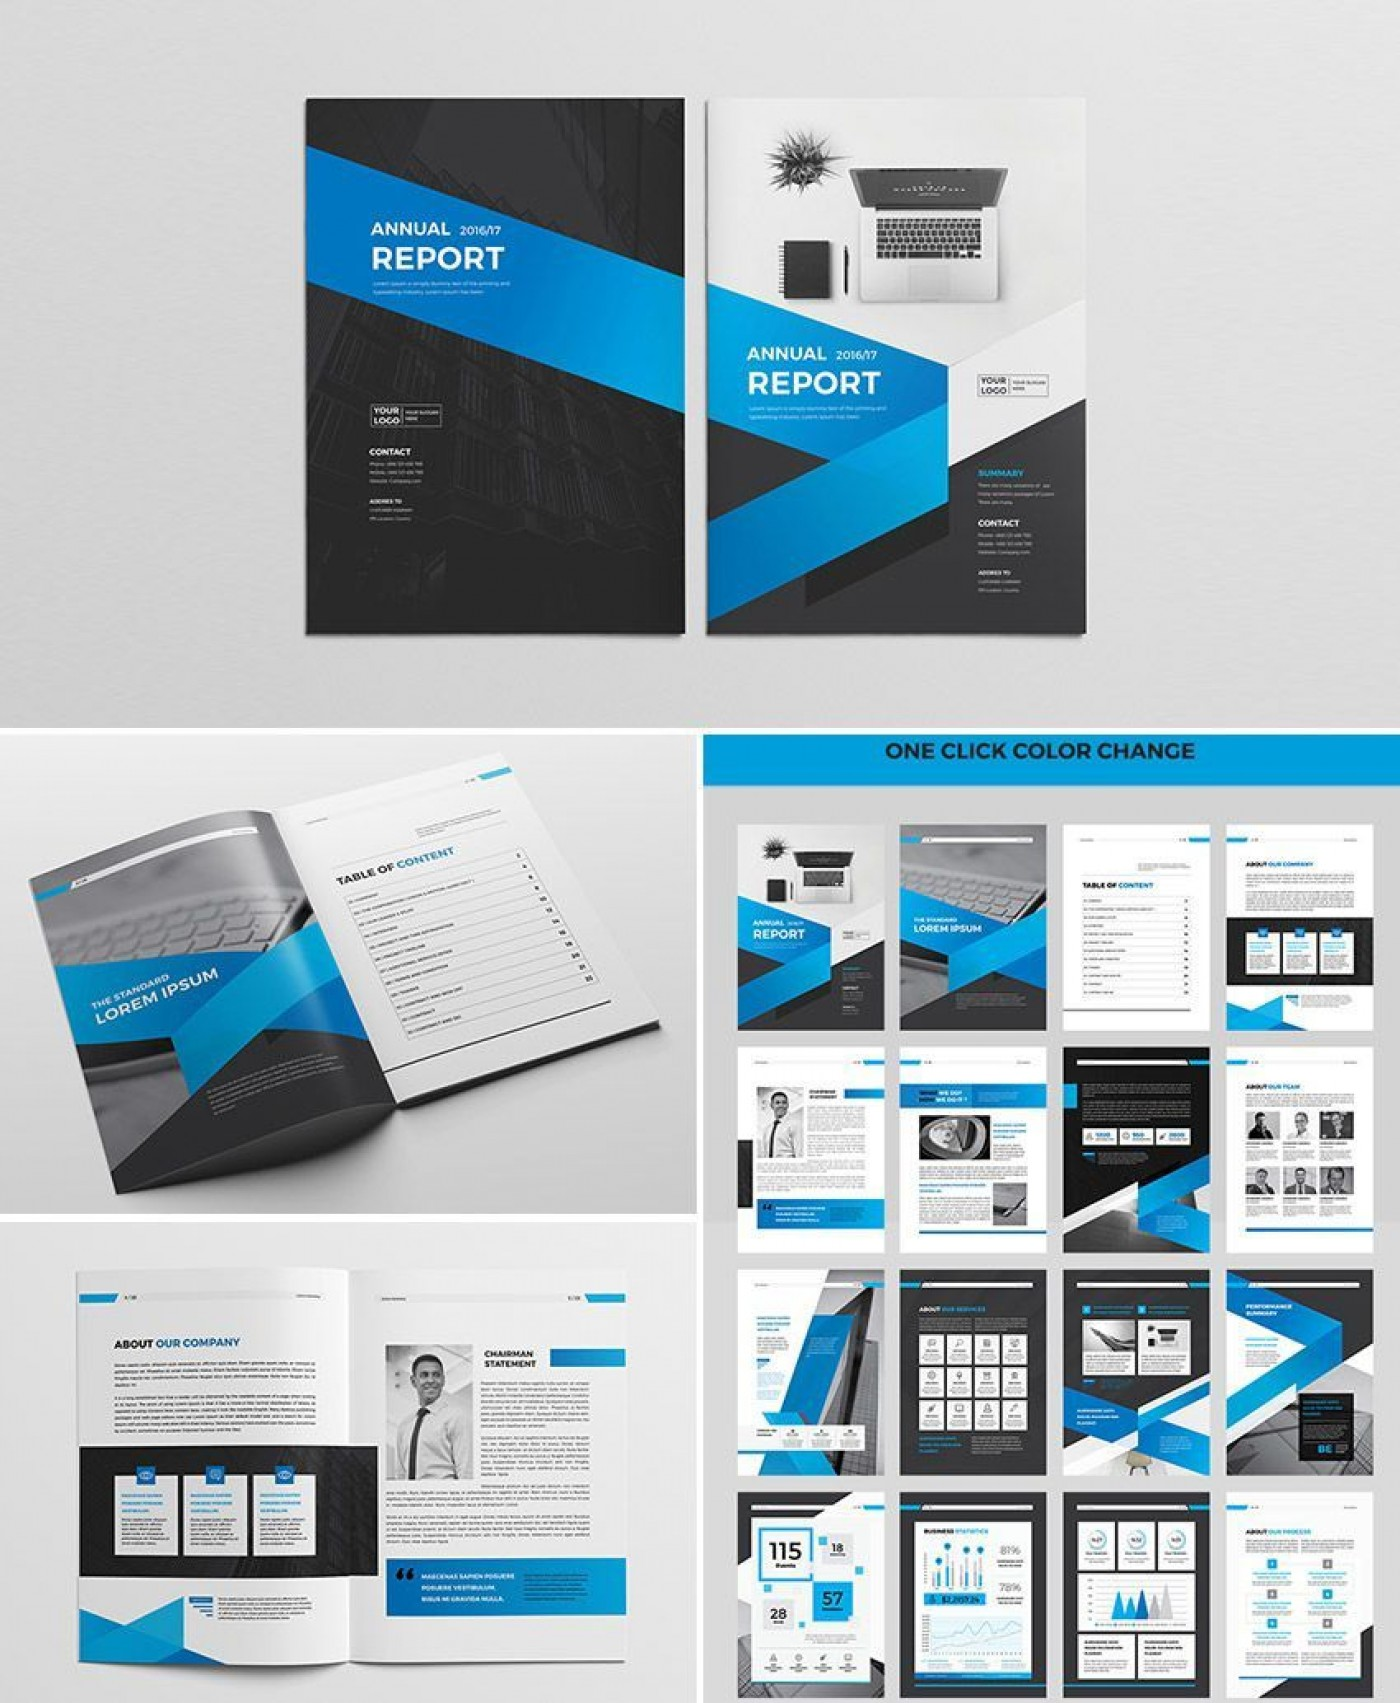 004 Awful Annual Report Design Template Indesign Highest Clarity  Free Download1400